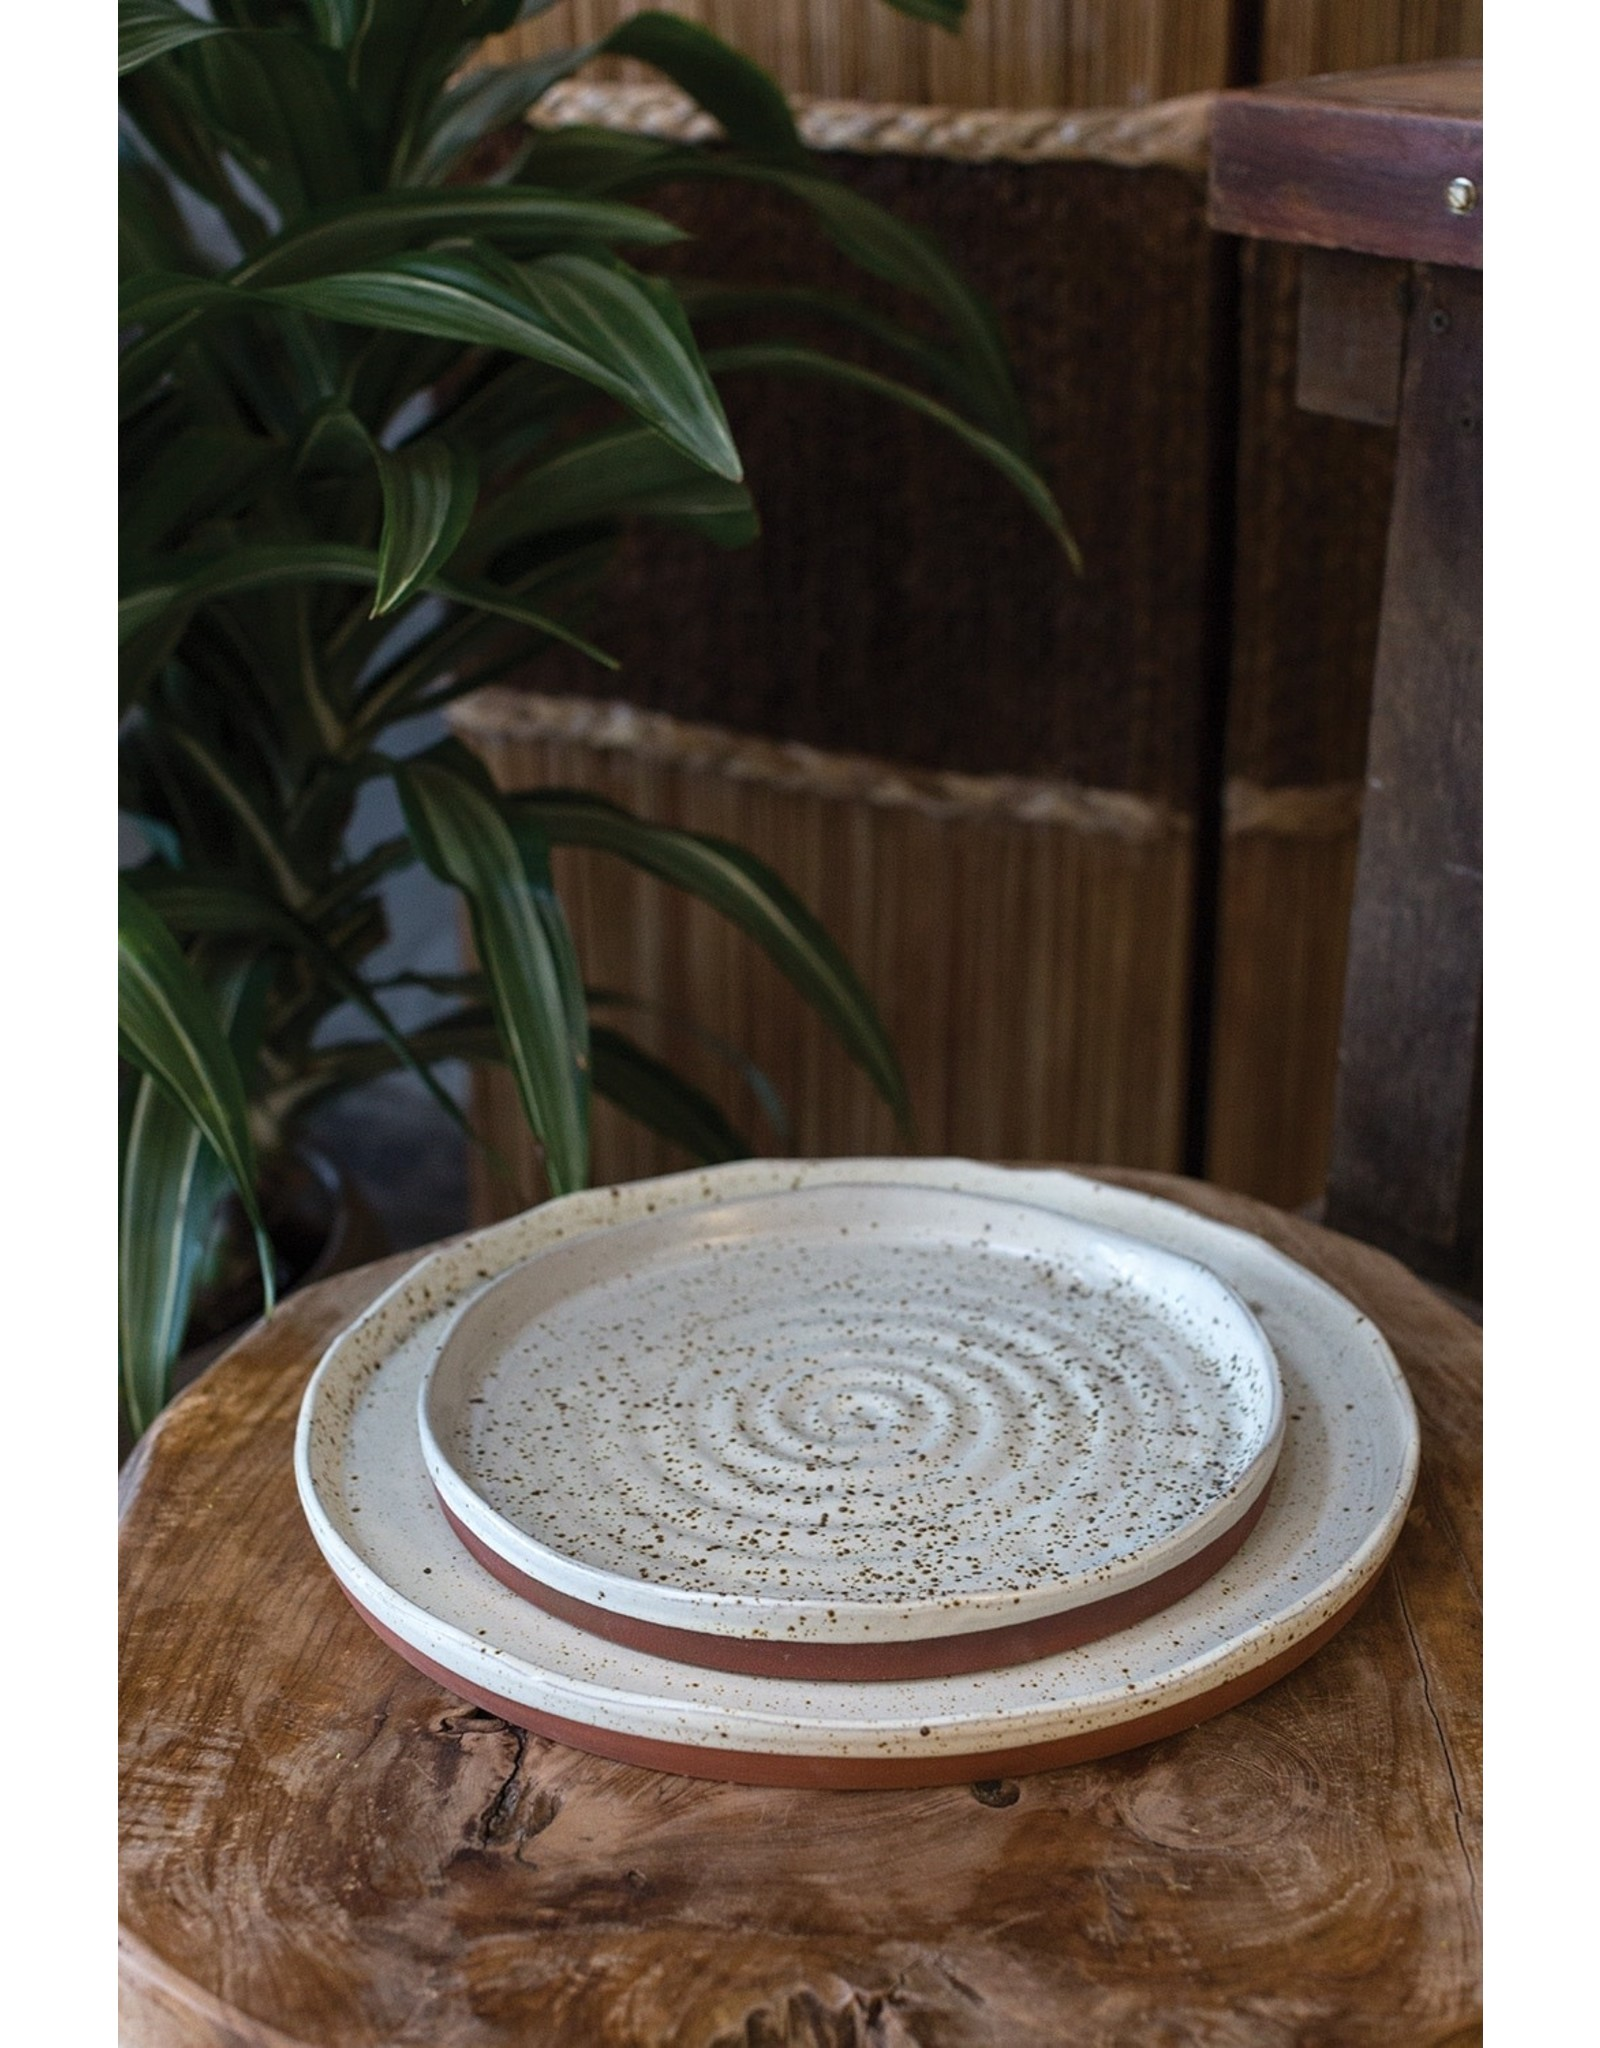 Oak + Arrow Interiors Como Saucer